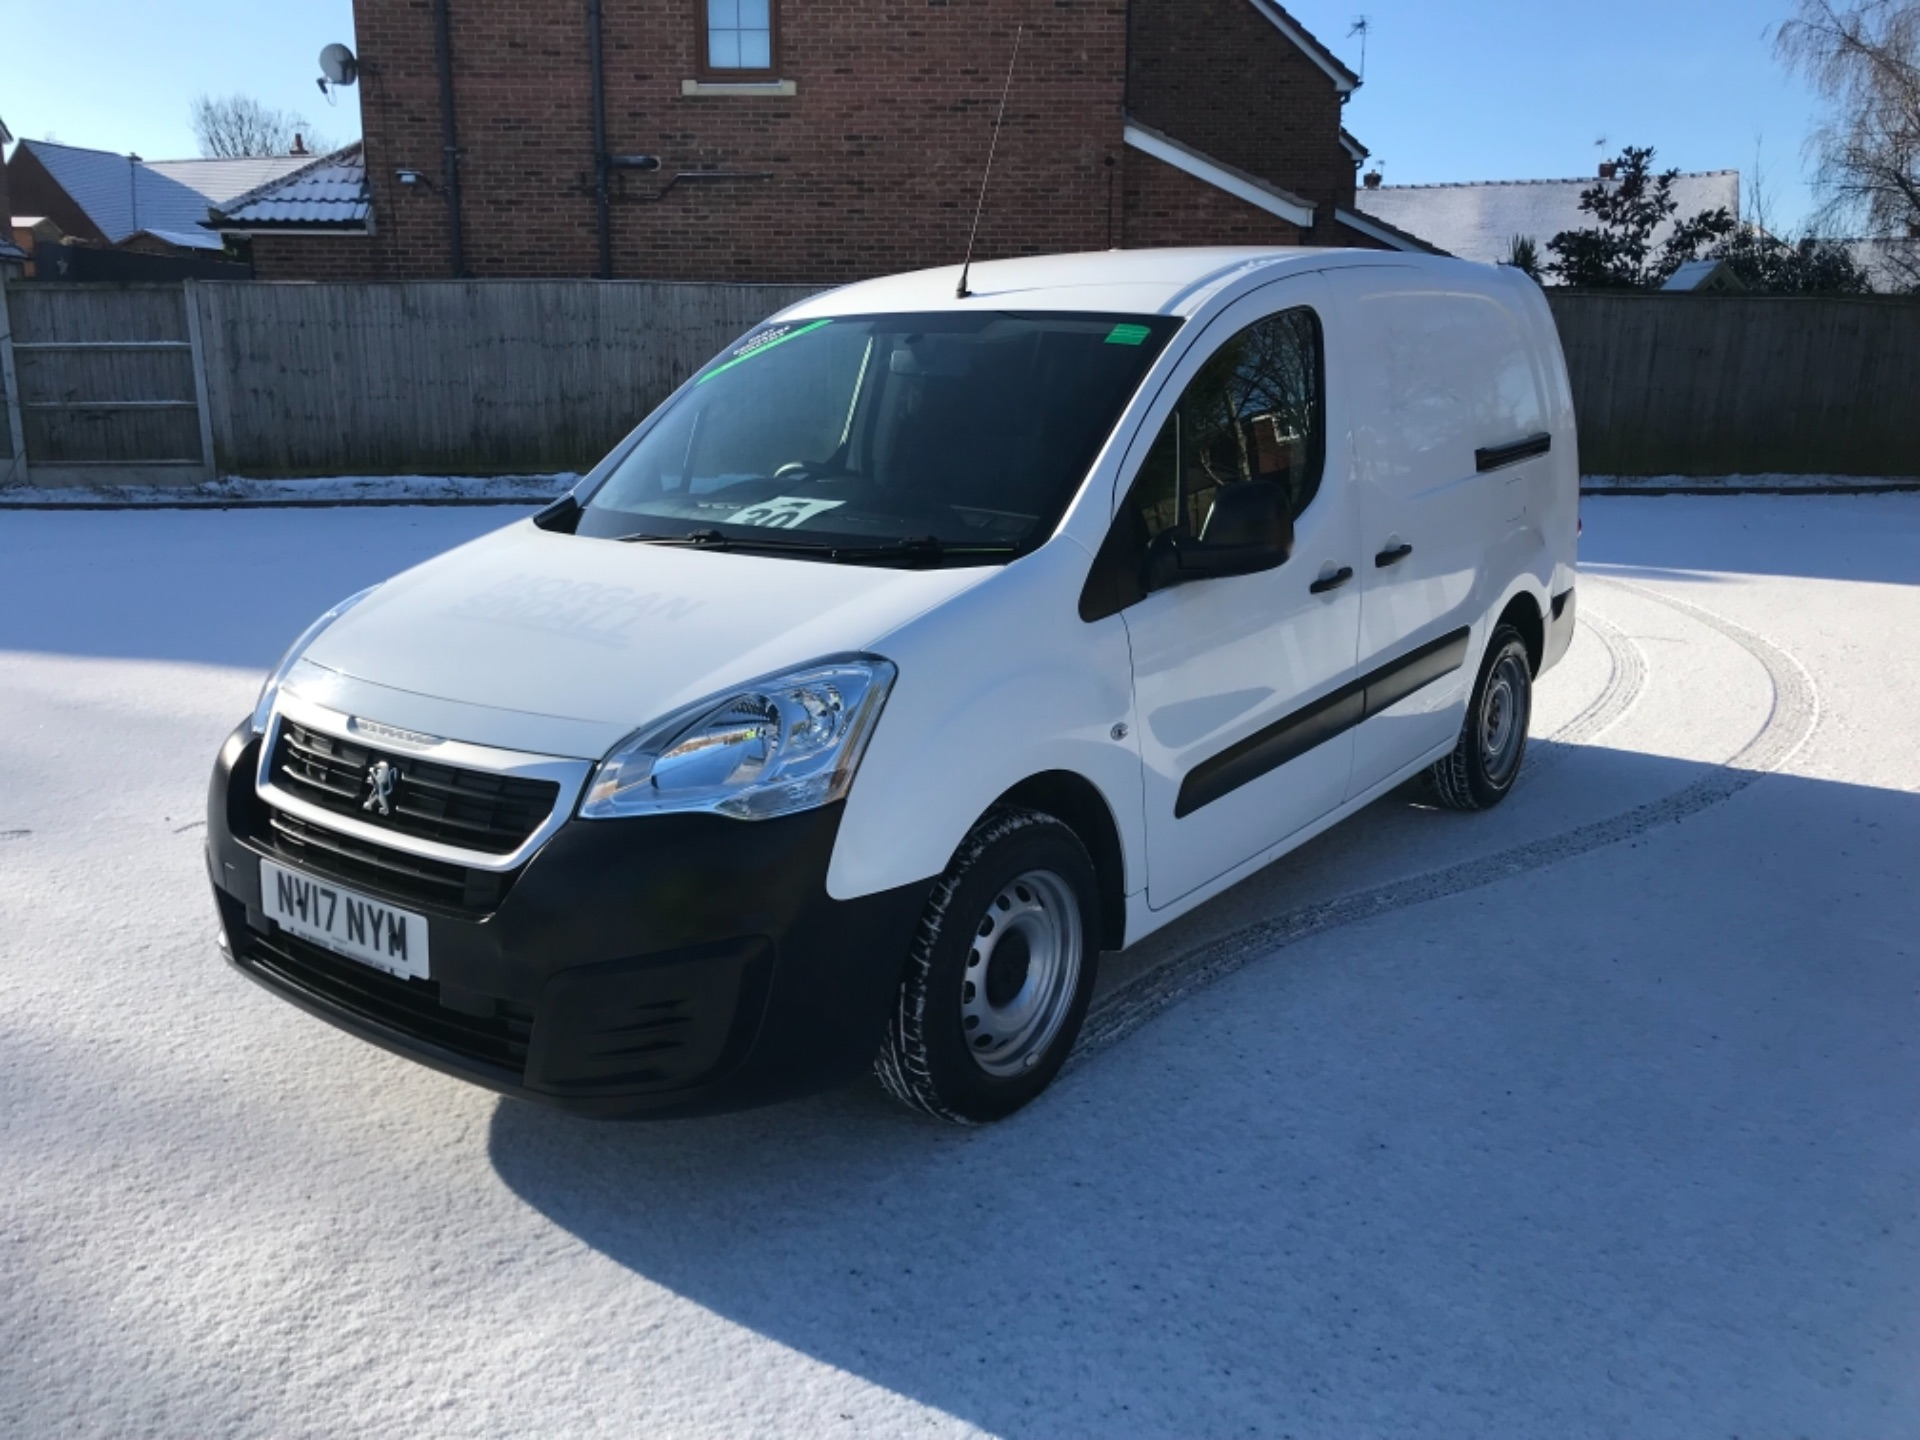 2017 Peugeot Partner L2 715 S 1.6 Bluehdi 100 Crew Van Euro 6  *70 MPH SPEED RESTRICTED (NV17NYM) Image 3